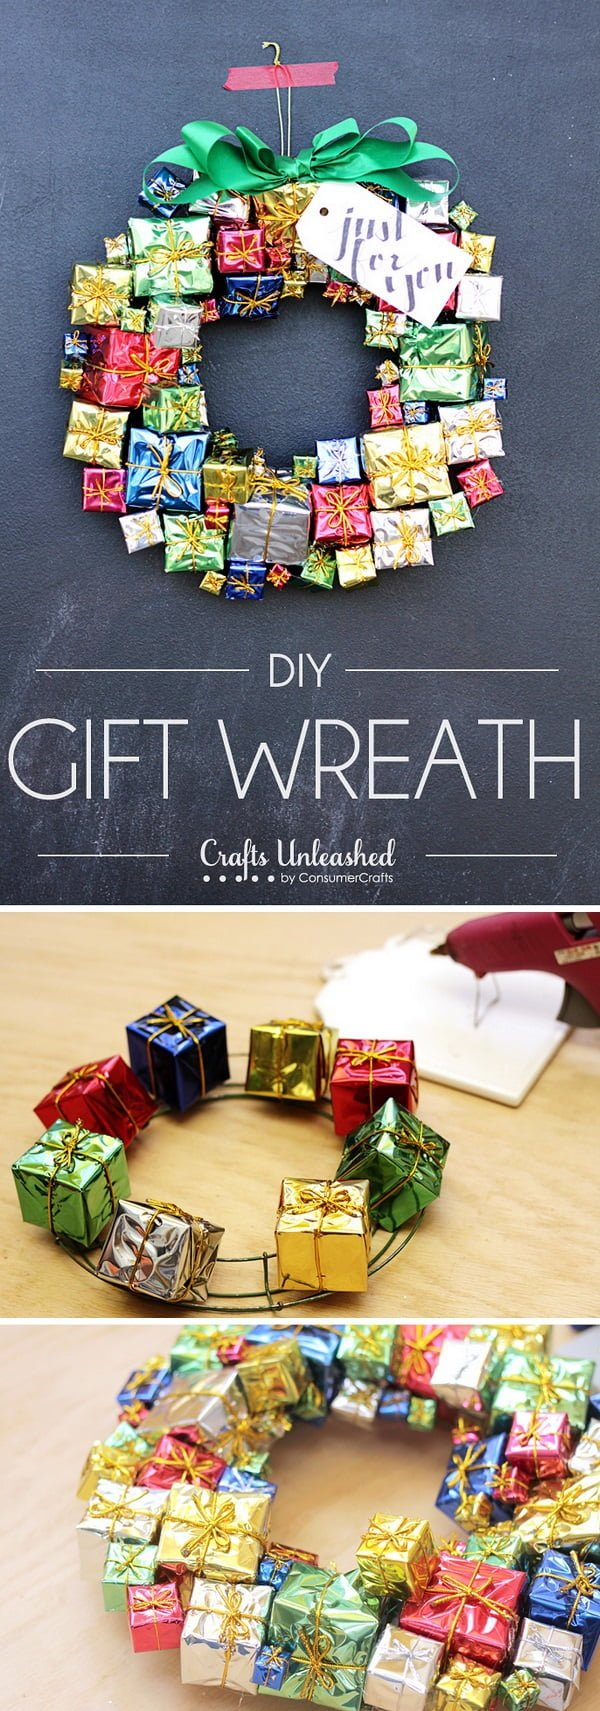 Check out this easy idea on how to make a #DIY #Christmas wreath #homedecor #crafts #project